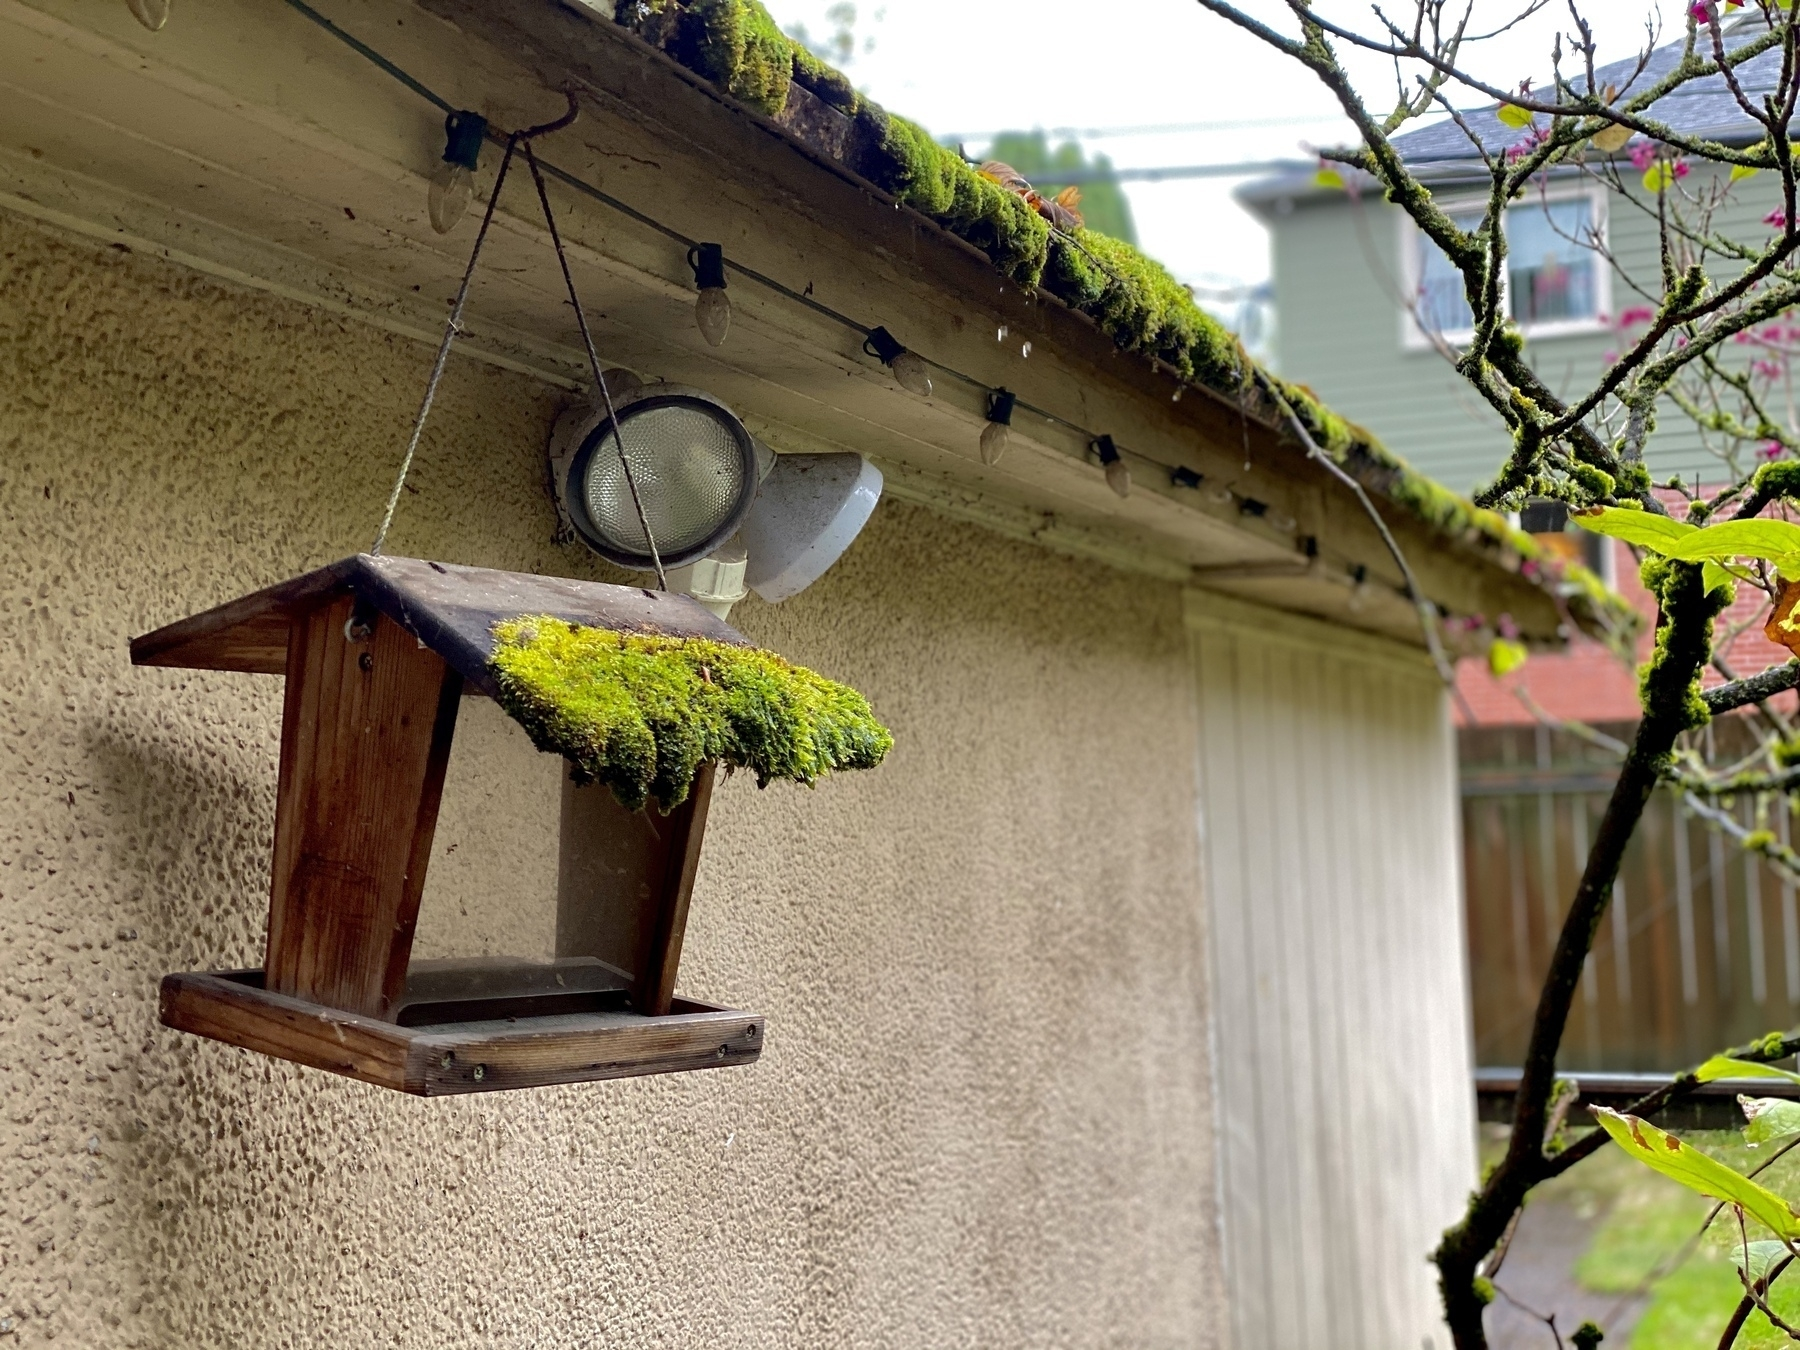 heavy moss on roof of bird feeder and garage, rain falling